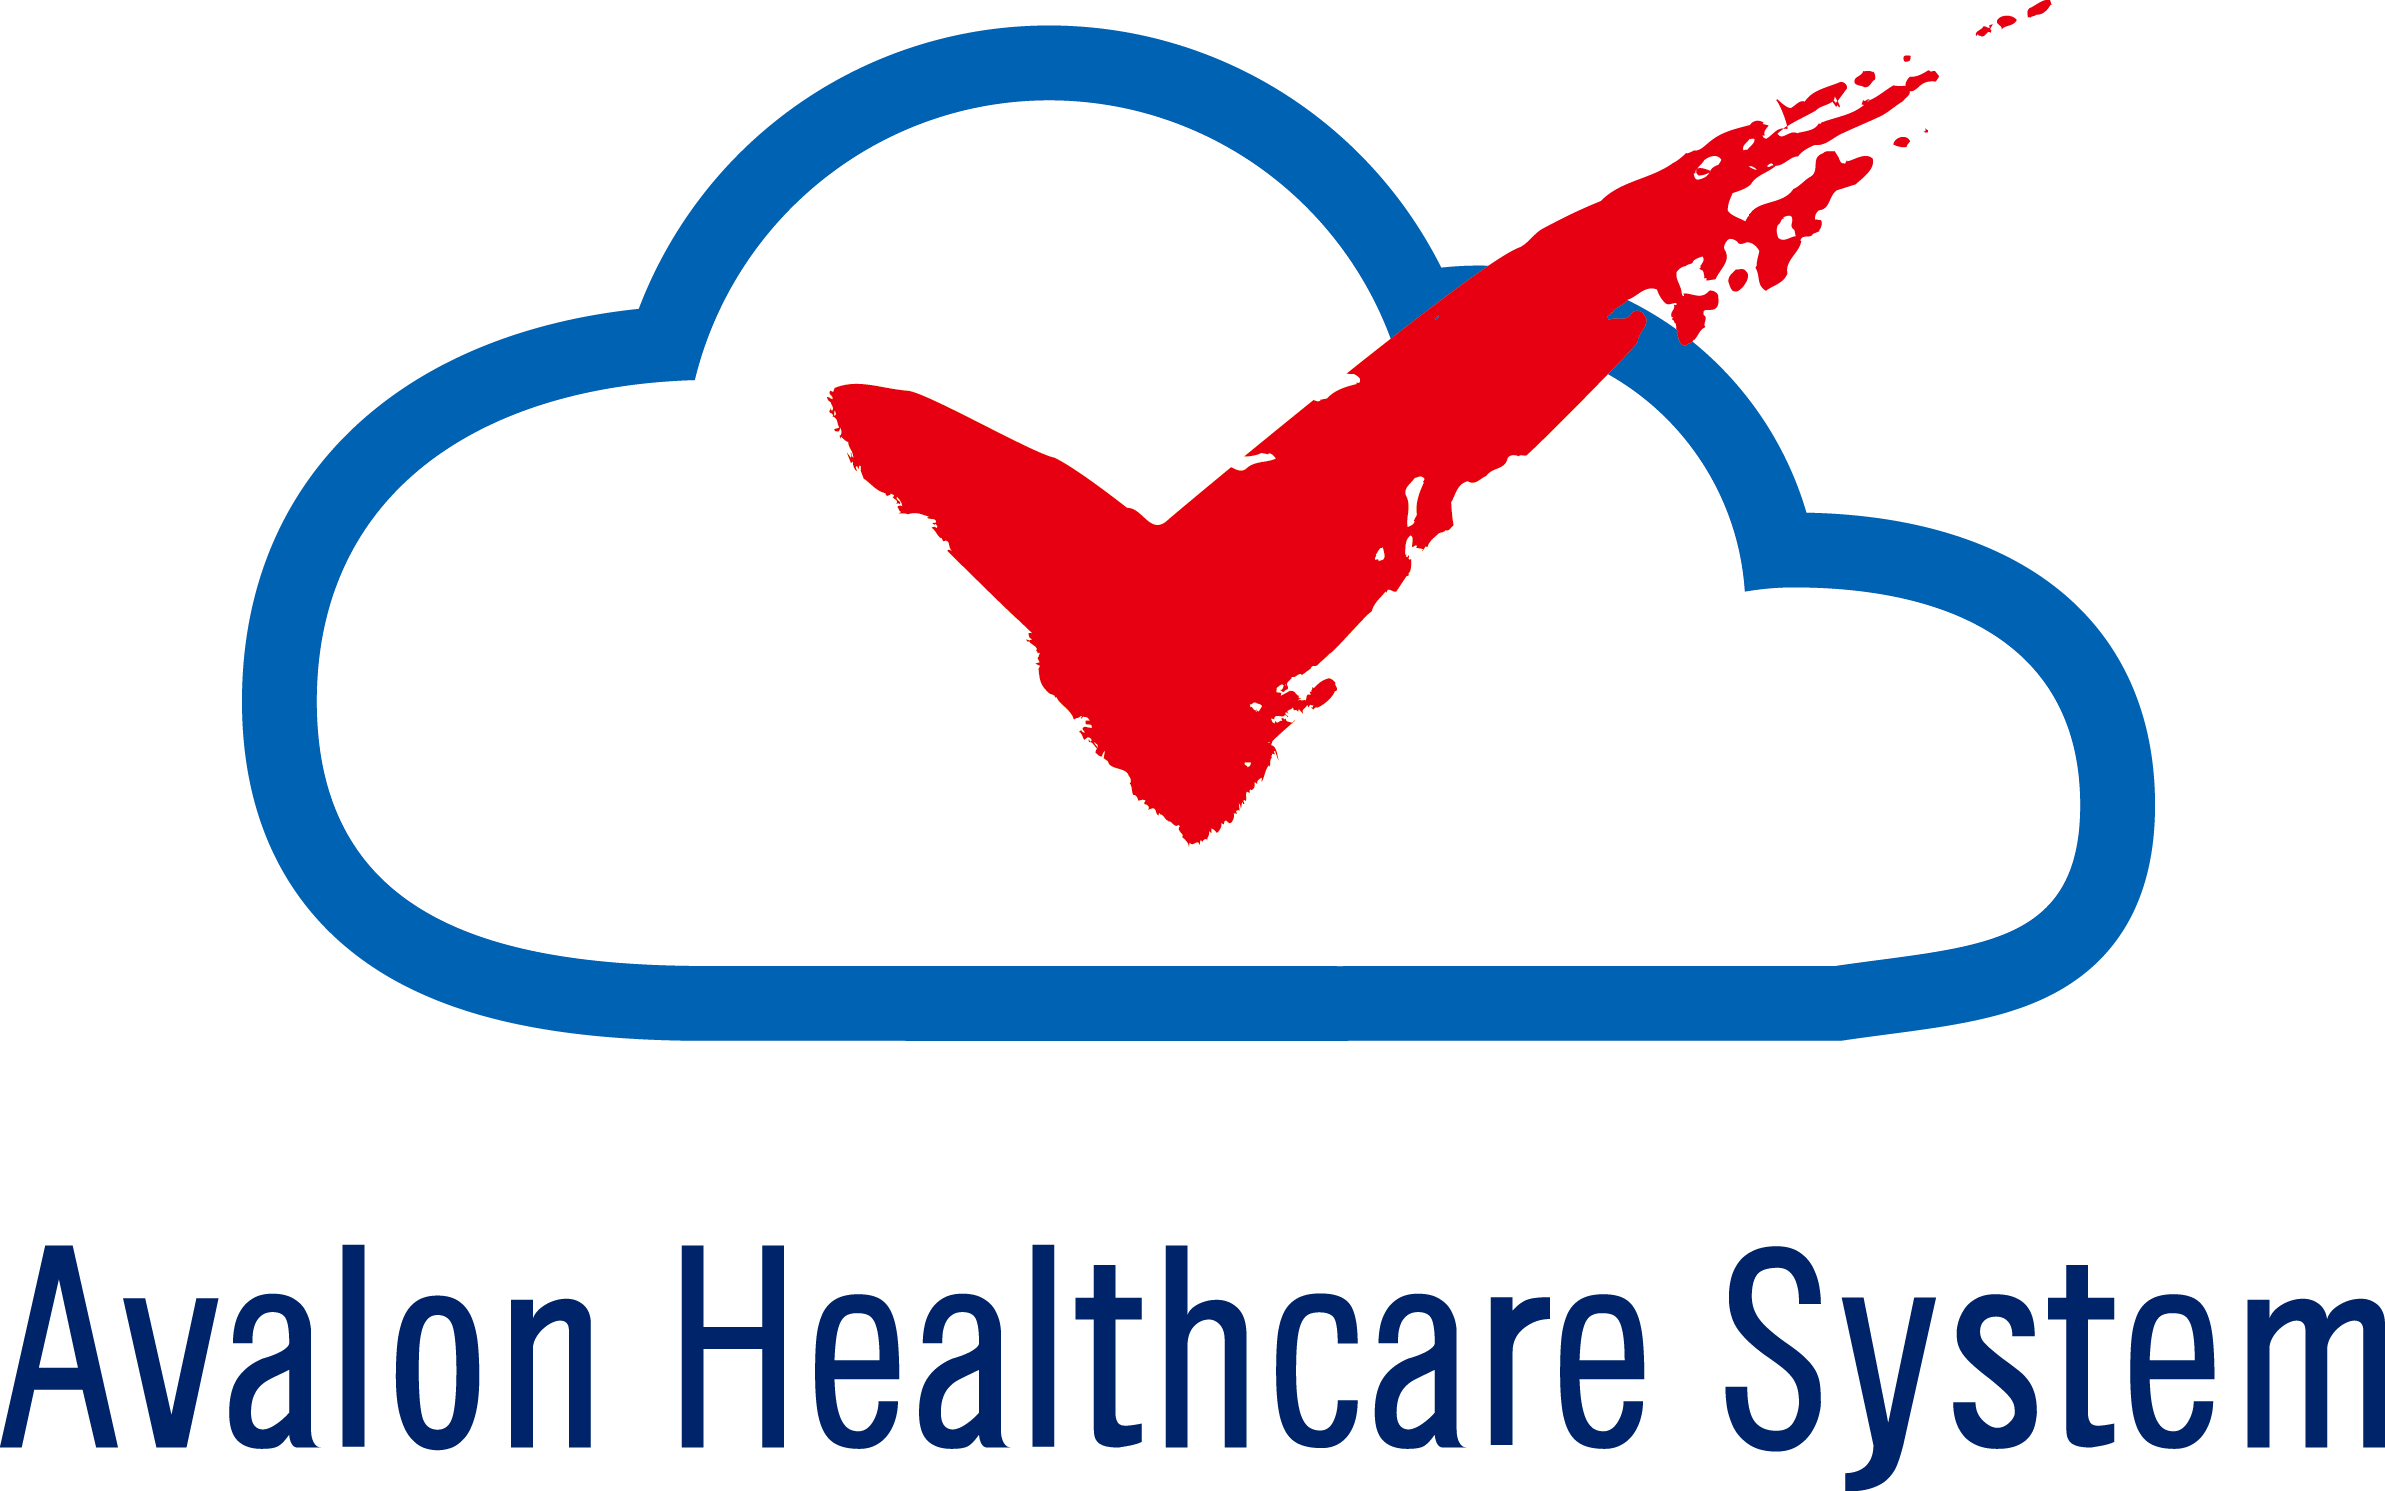 Avalon Healthcare System Inc-LOGO